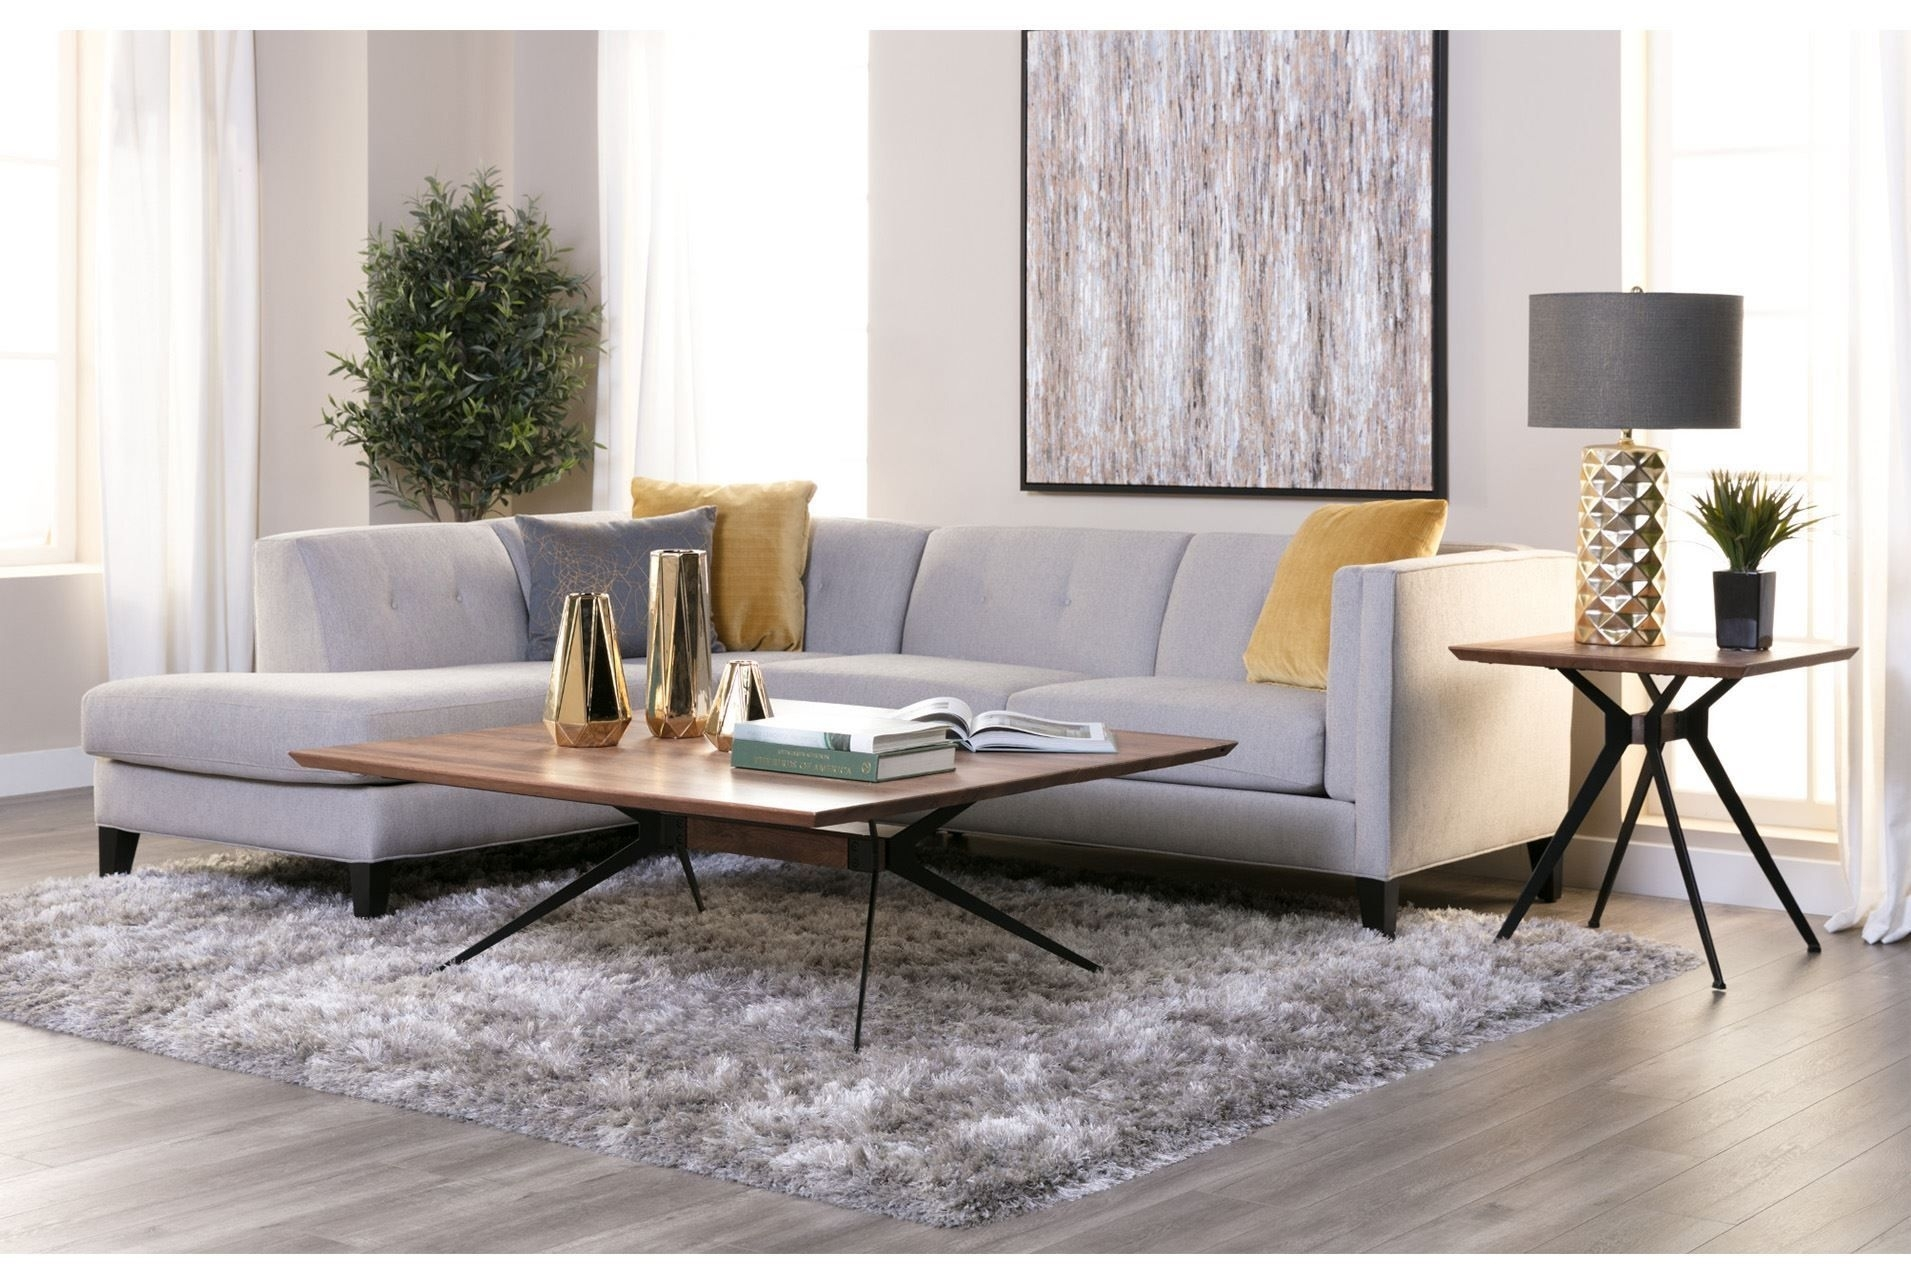 Avery 2 Piece Sectional W/laf Armless Chaise | Home Decor/interior throughout Avery 2 Piece Sectionals With Laf Armless Chaise (Image 3 of 30)